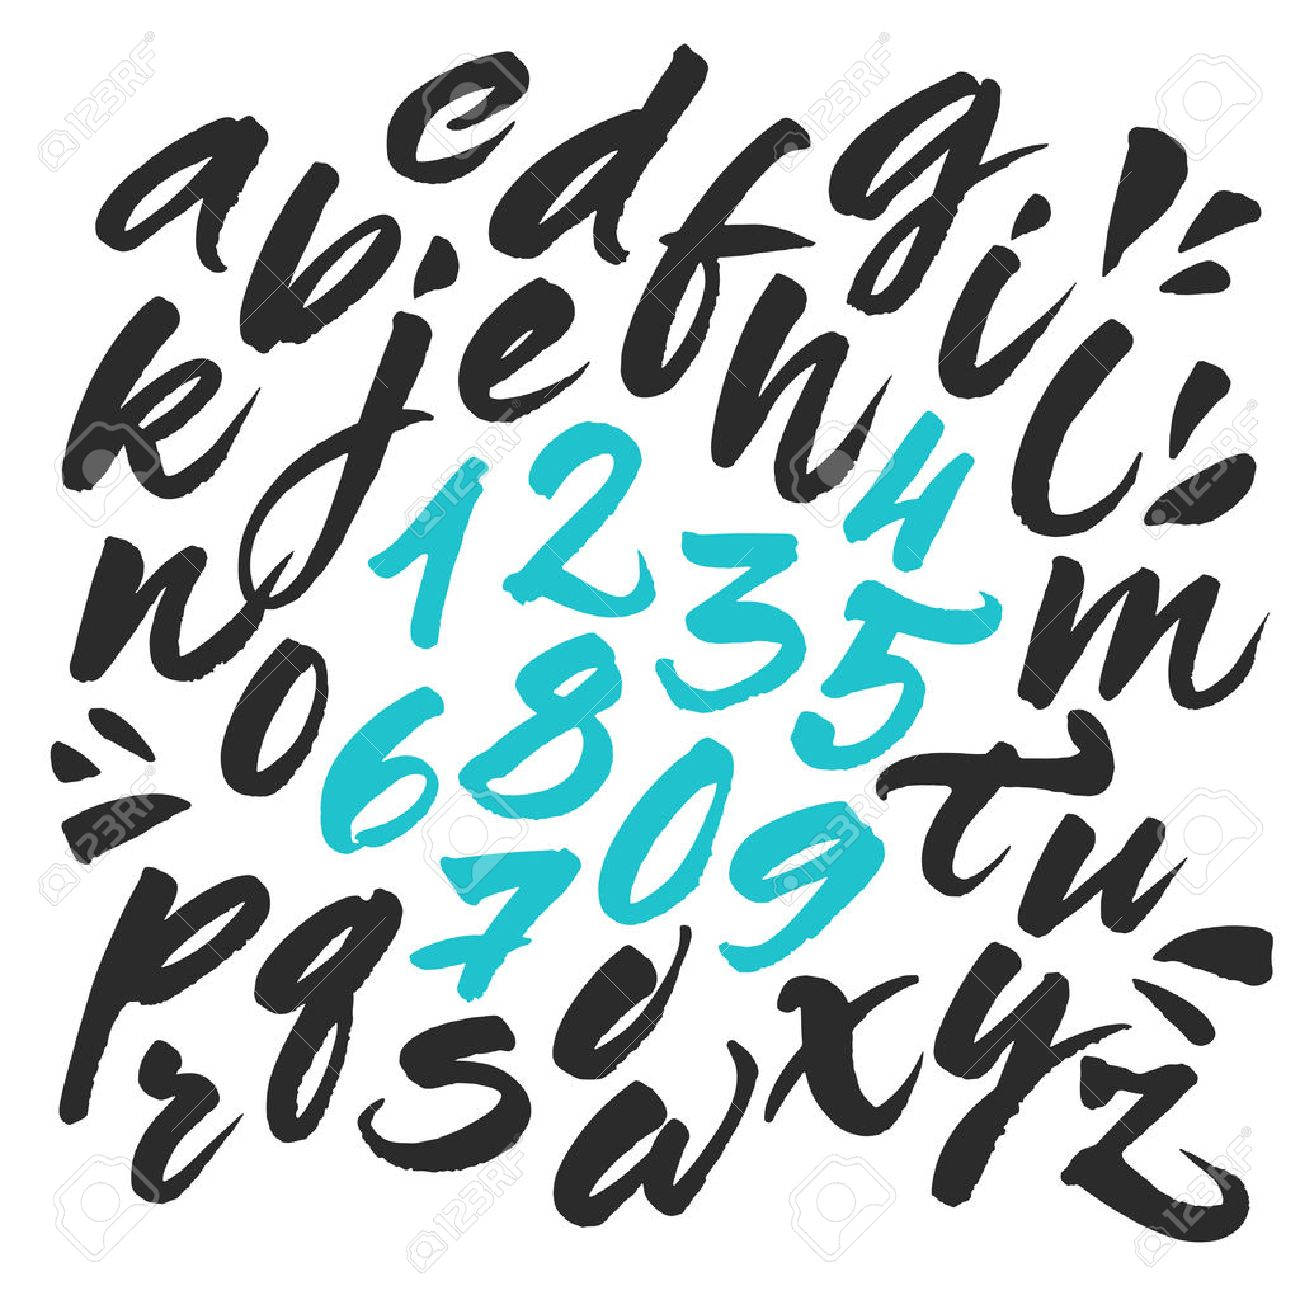 10 037 latin script stock vector illustration and royalty free